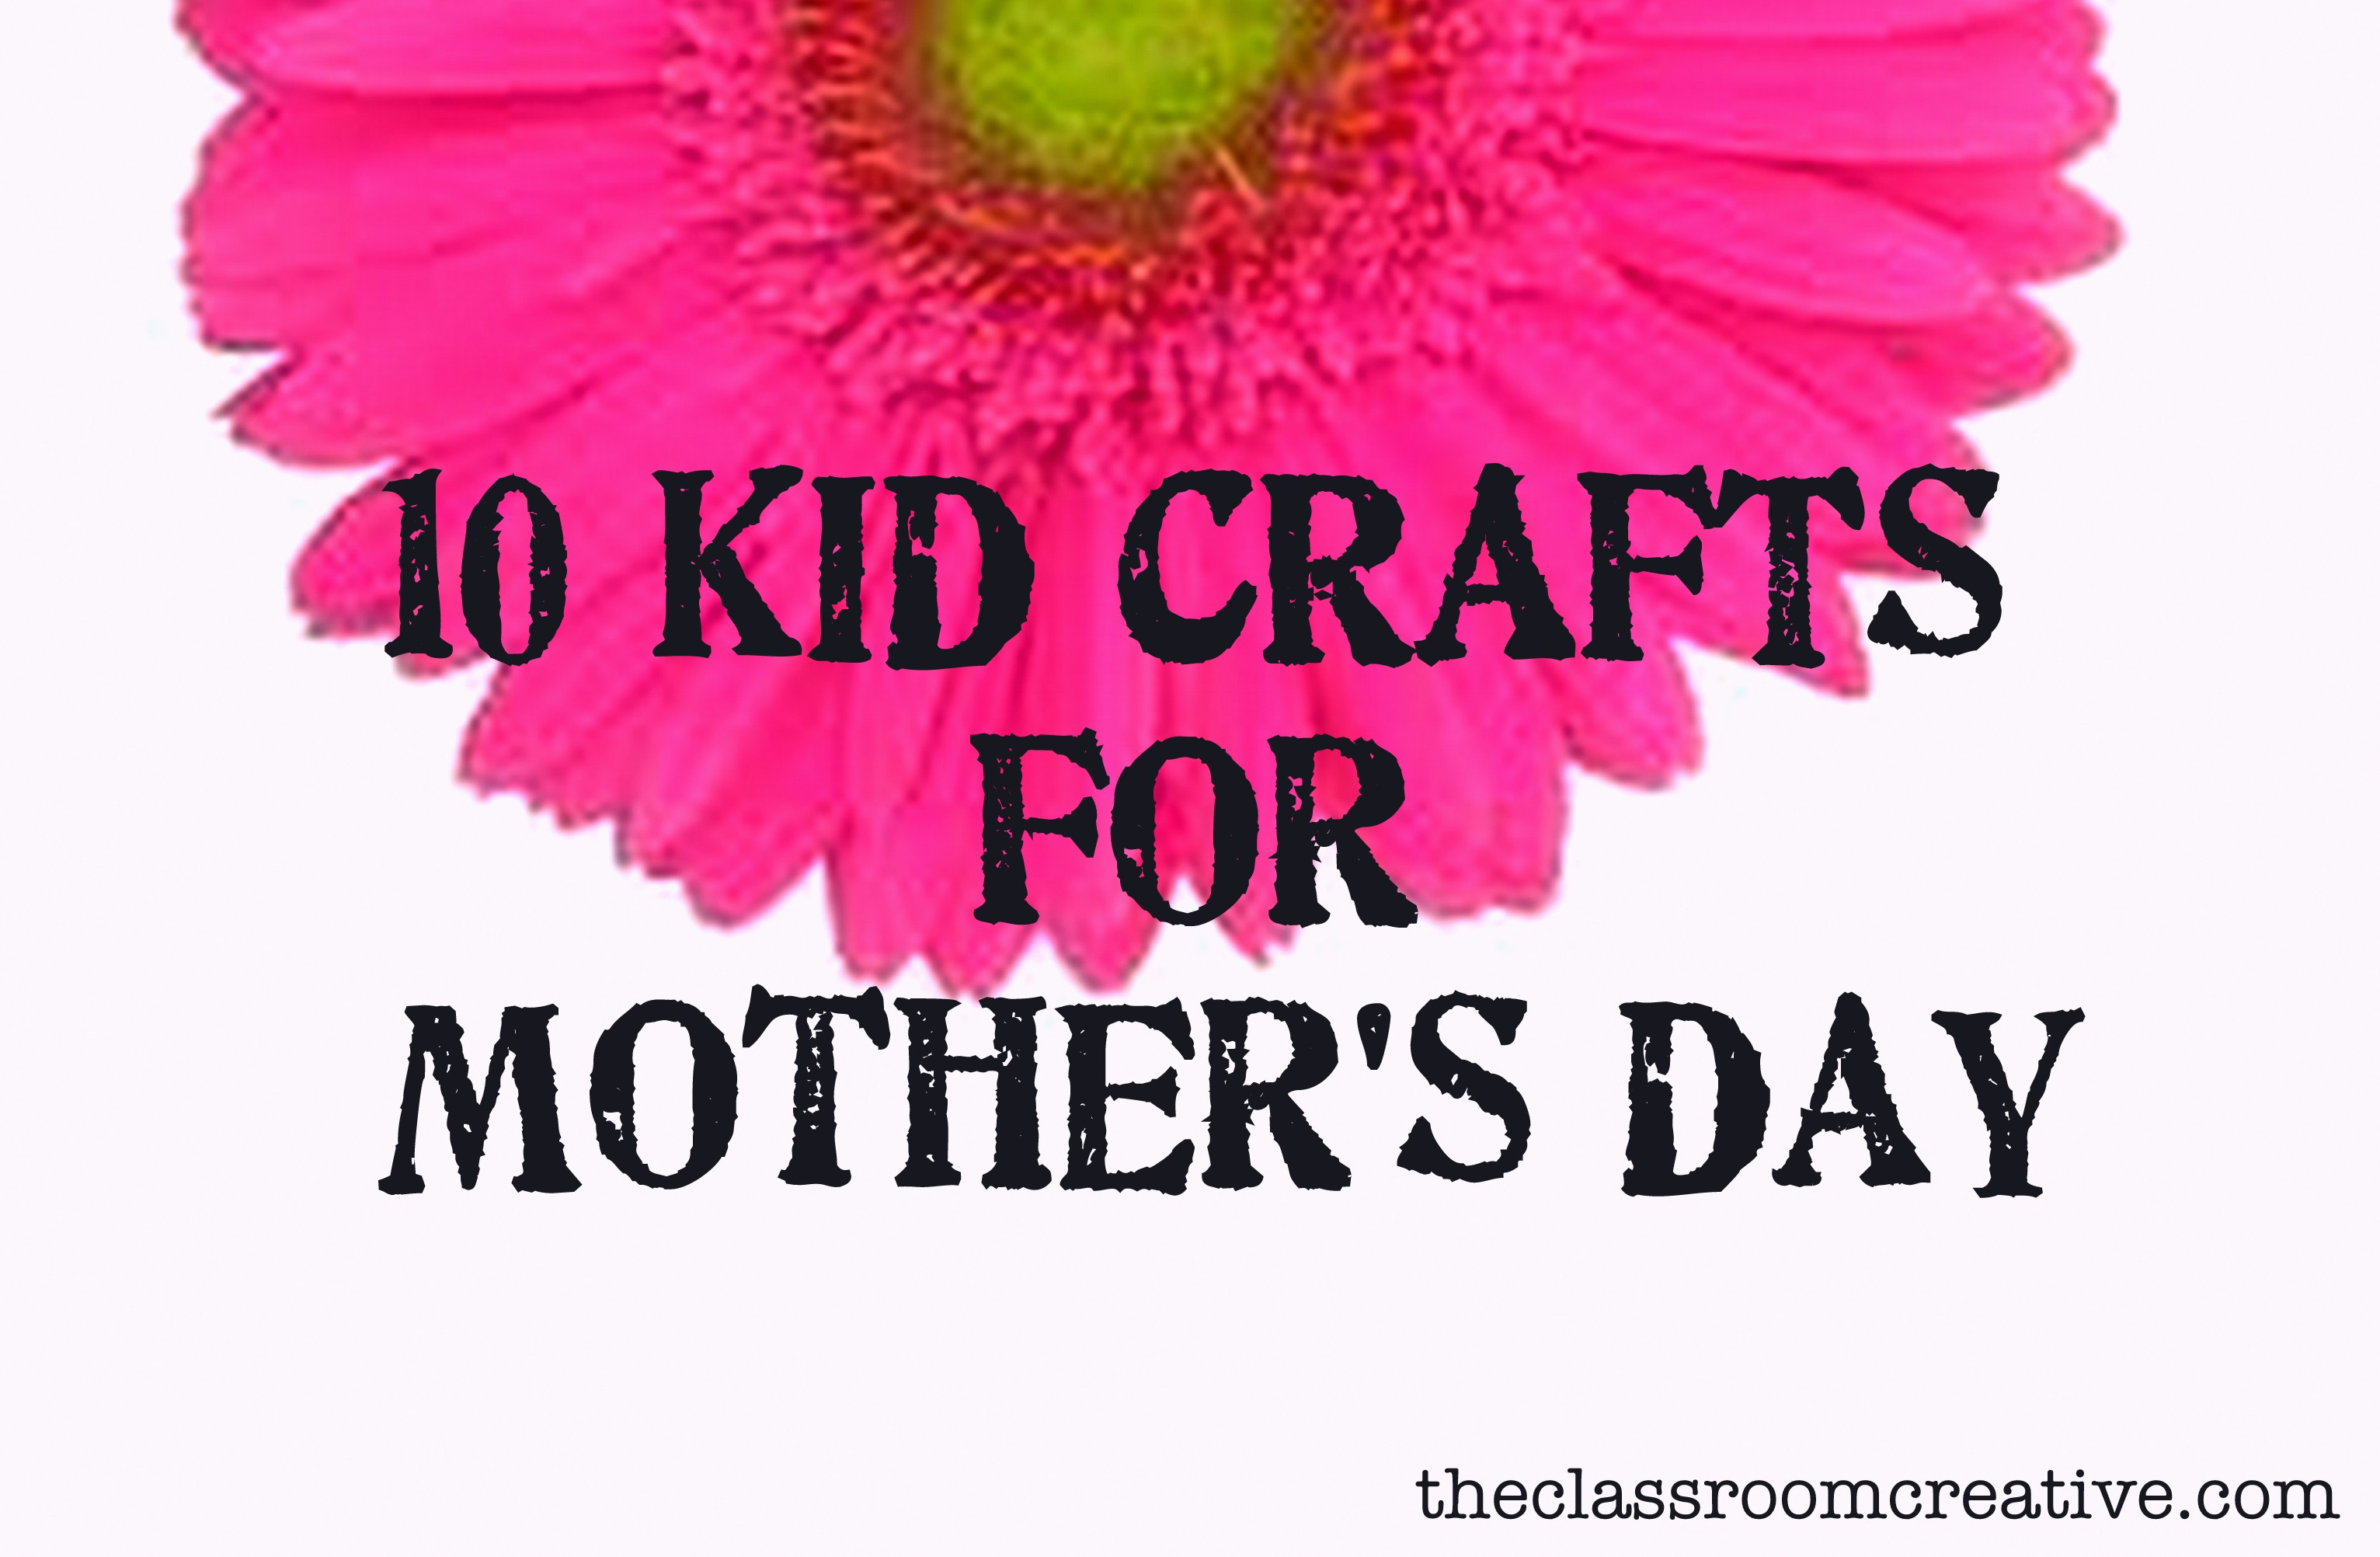 10 Kid Crafts for Mother's Day